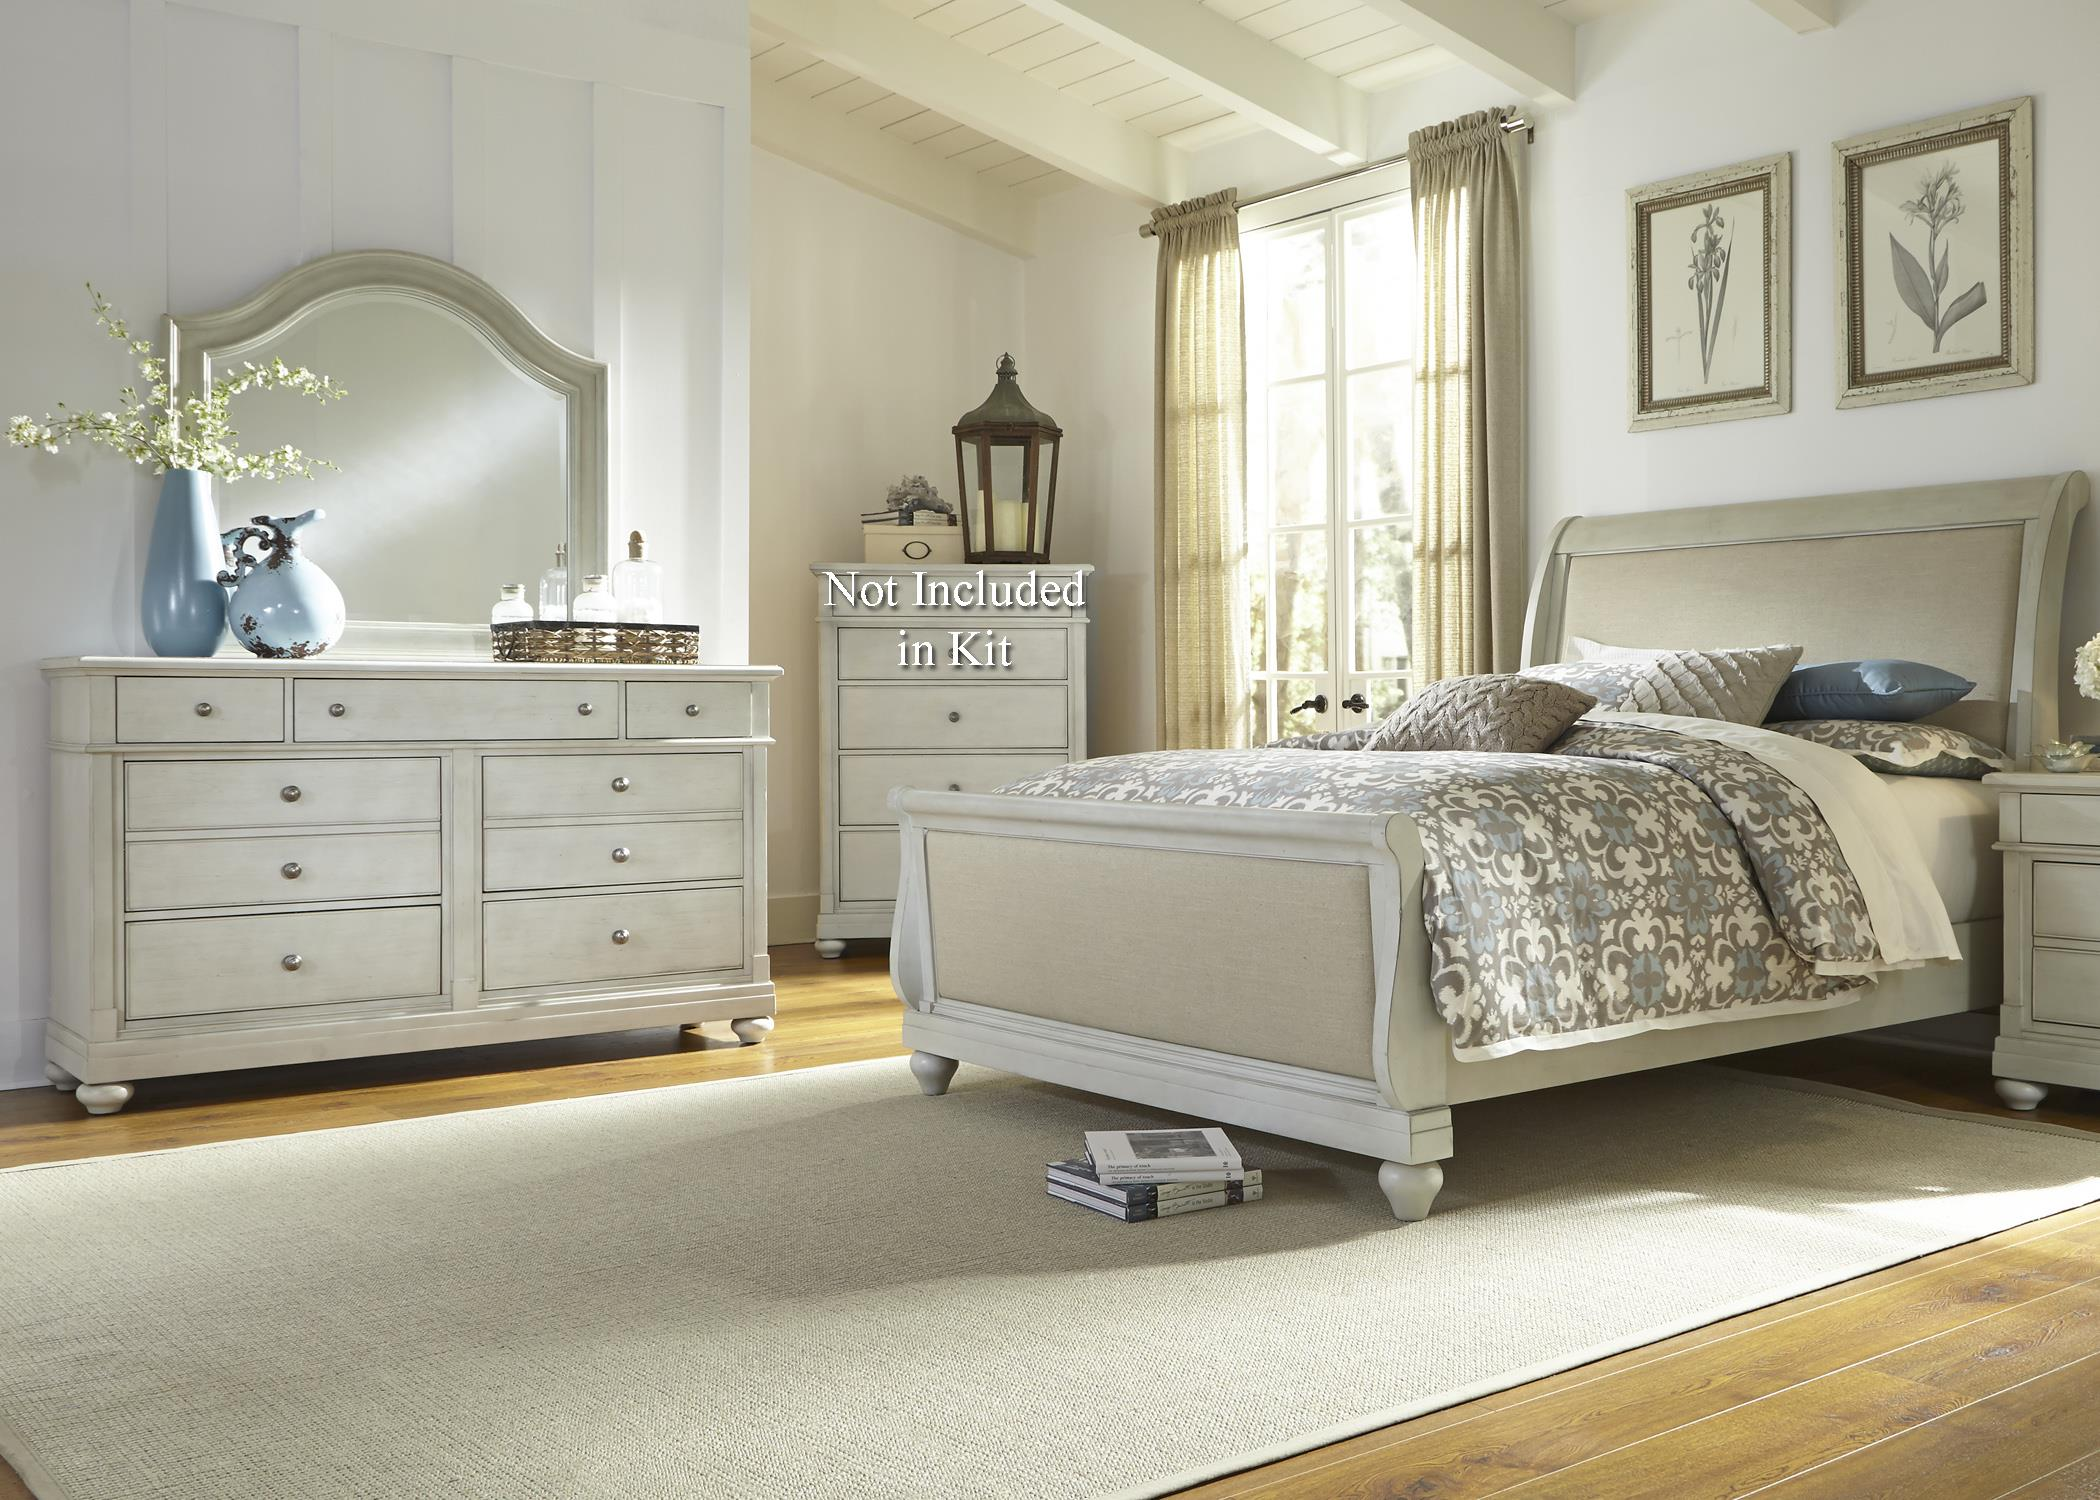 Liberty Furniture Harbor View King Bedroom Group - Item Number: 731-BR-KSLDM